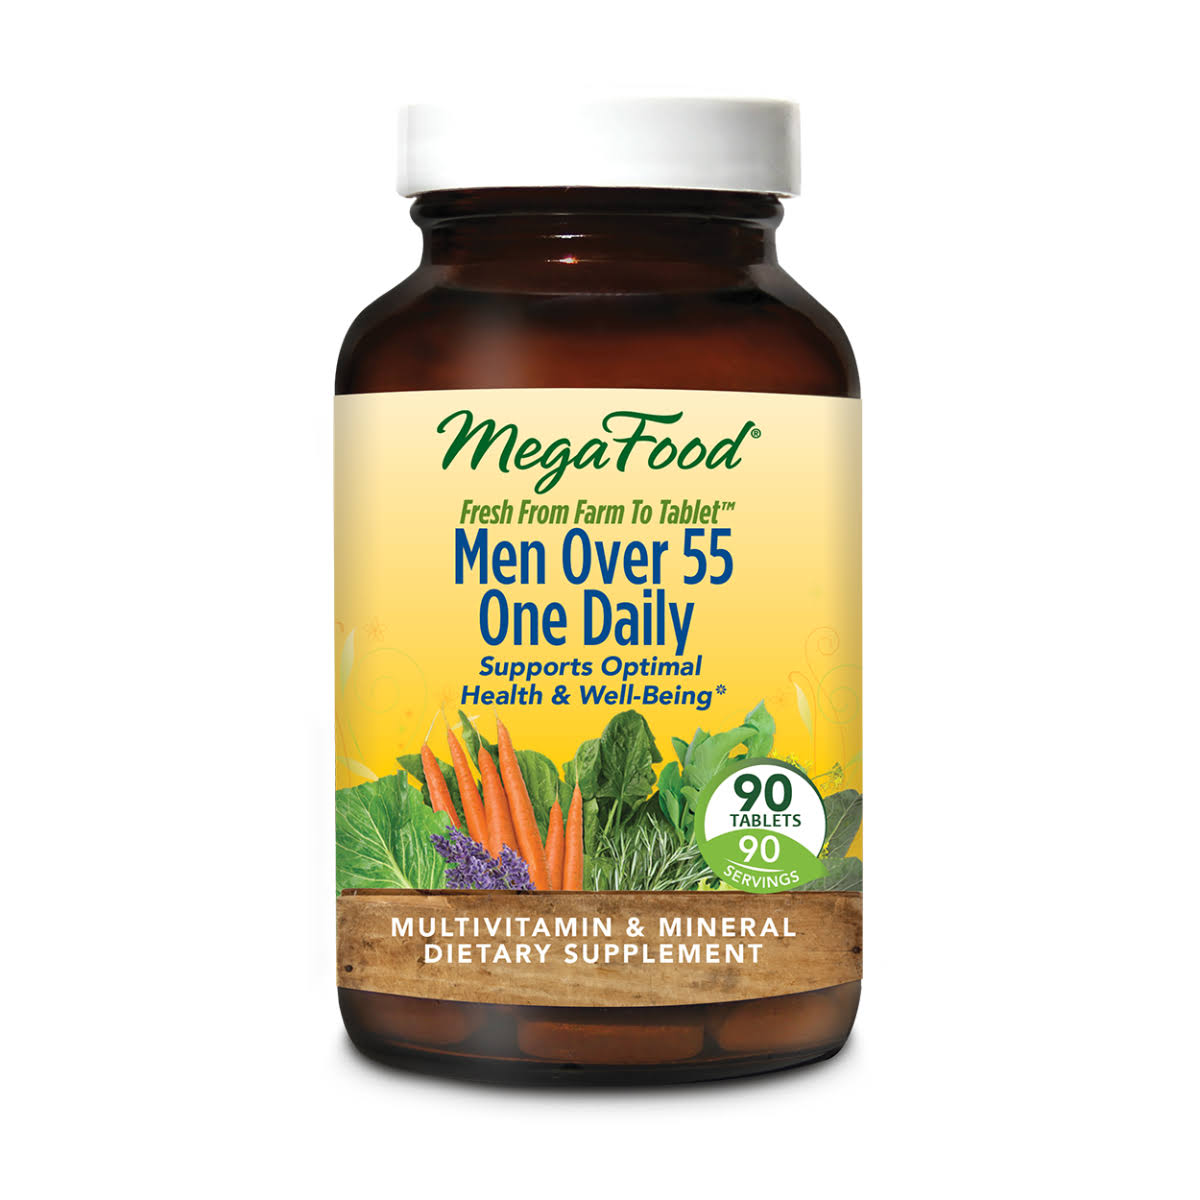 MegaFood - Men Over 55 One Daily - 90 Tablets